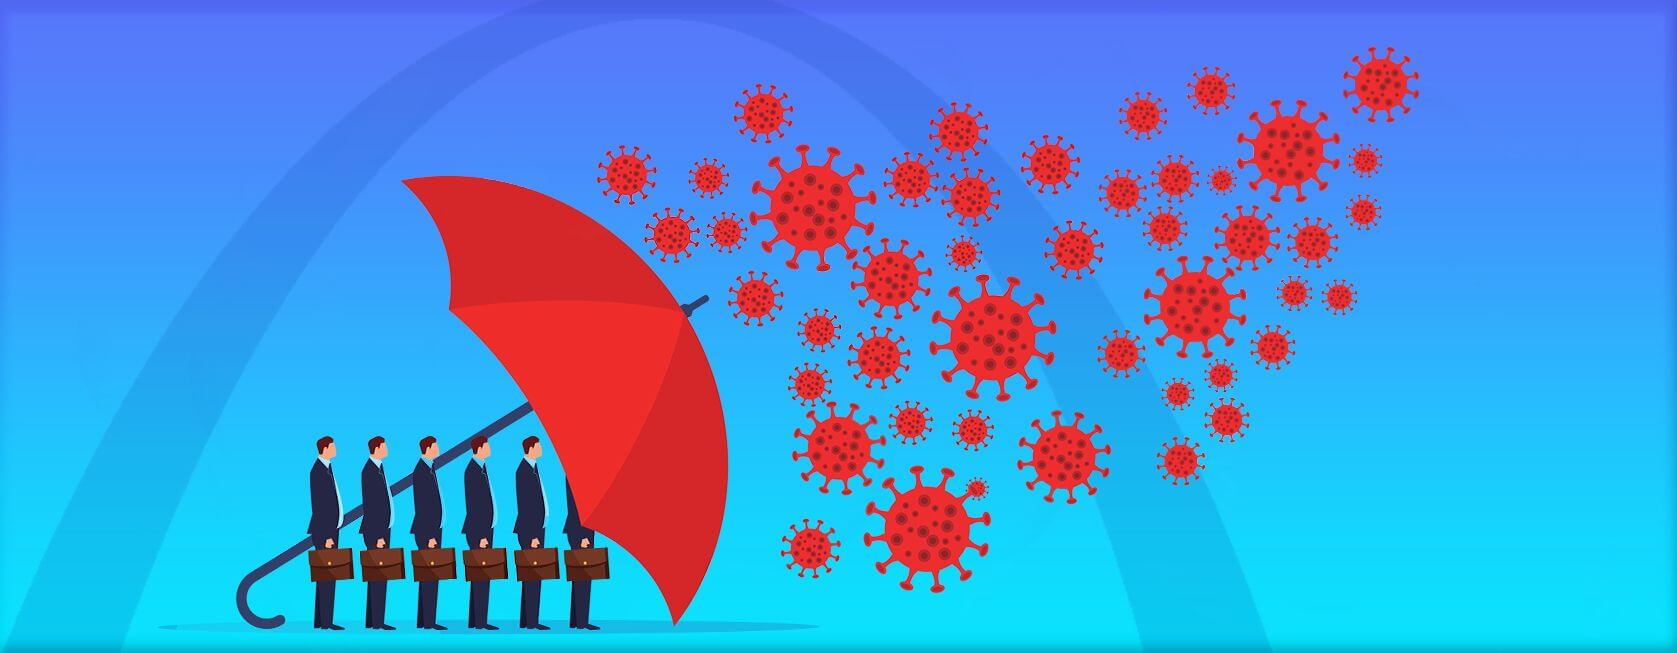 Image of business people shielded from viruses by an umbrella